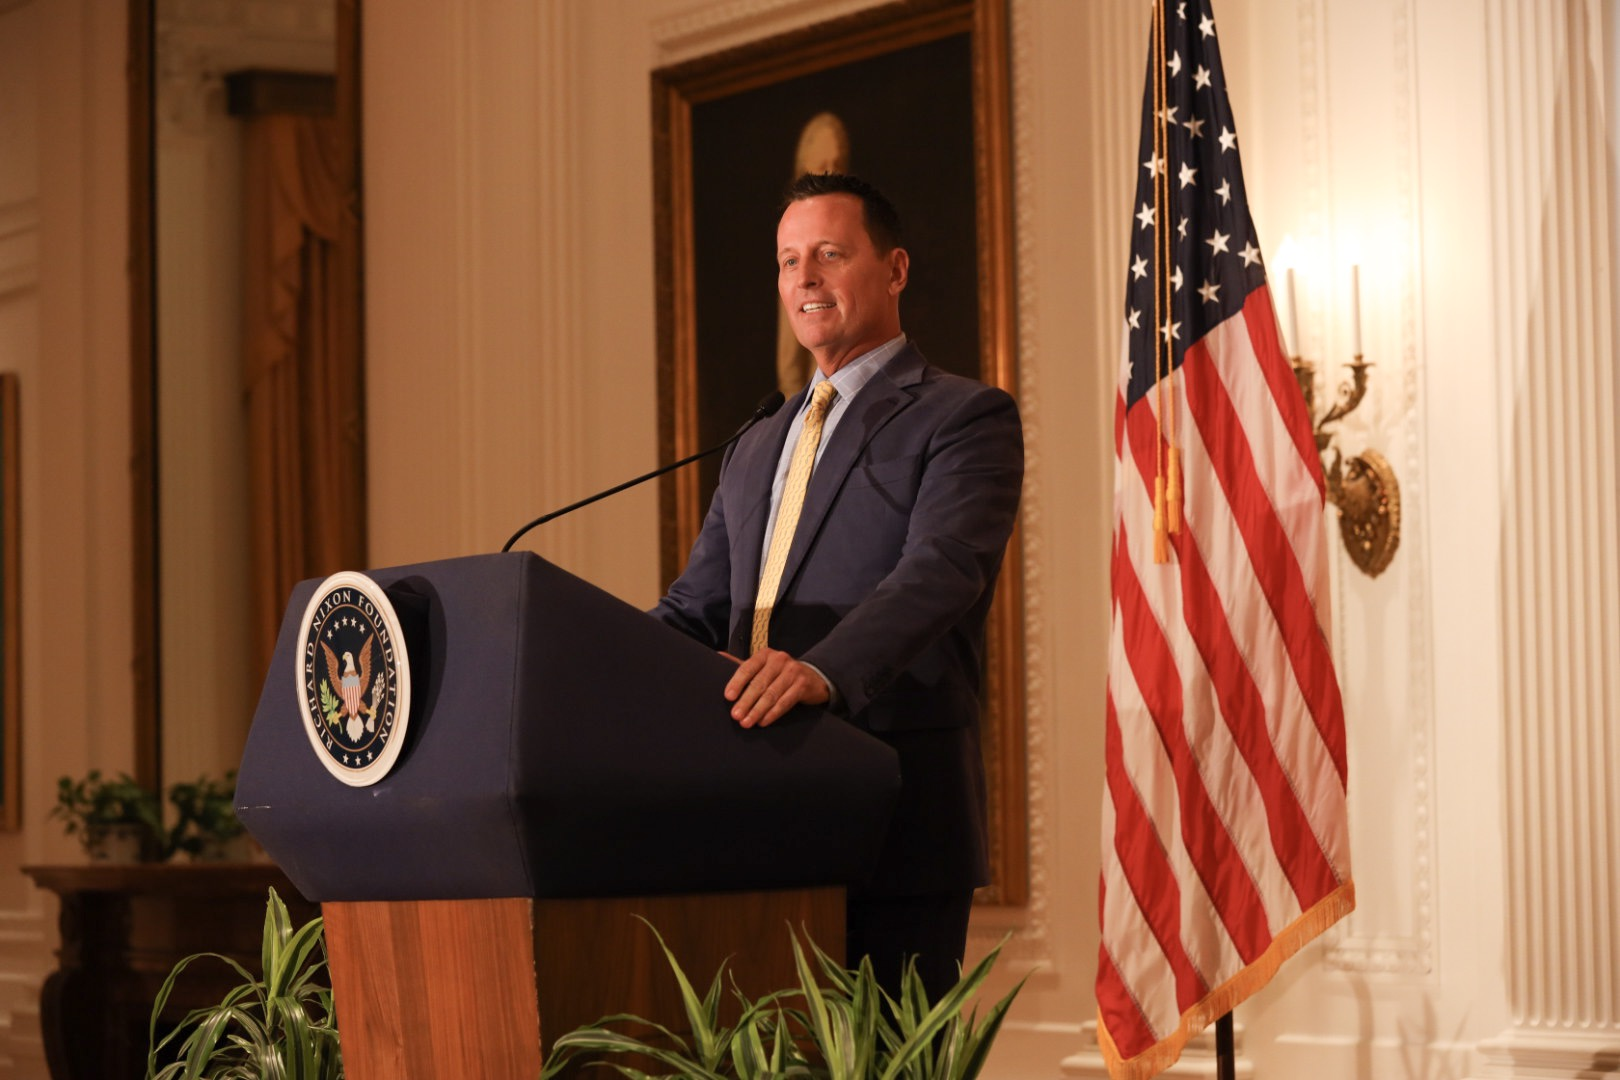 Ambassador Richard A. Grenell: Remarks on the 50th Anniversary of the Nixon Doctrine